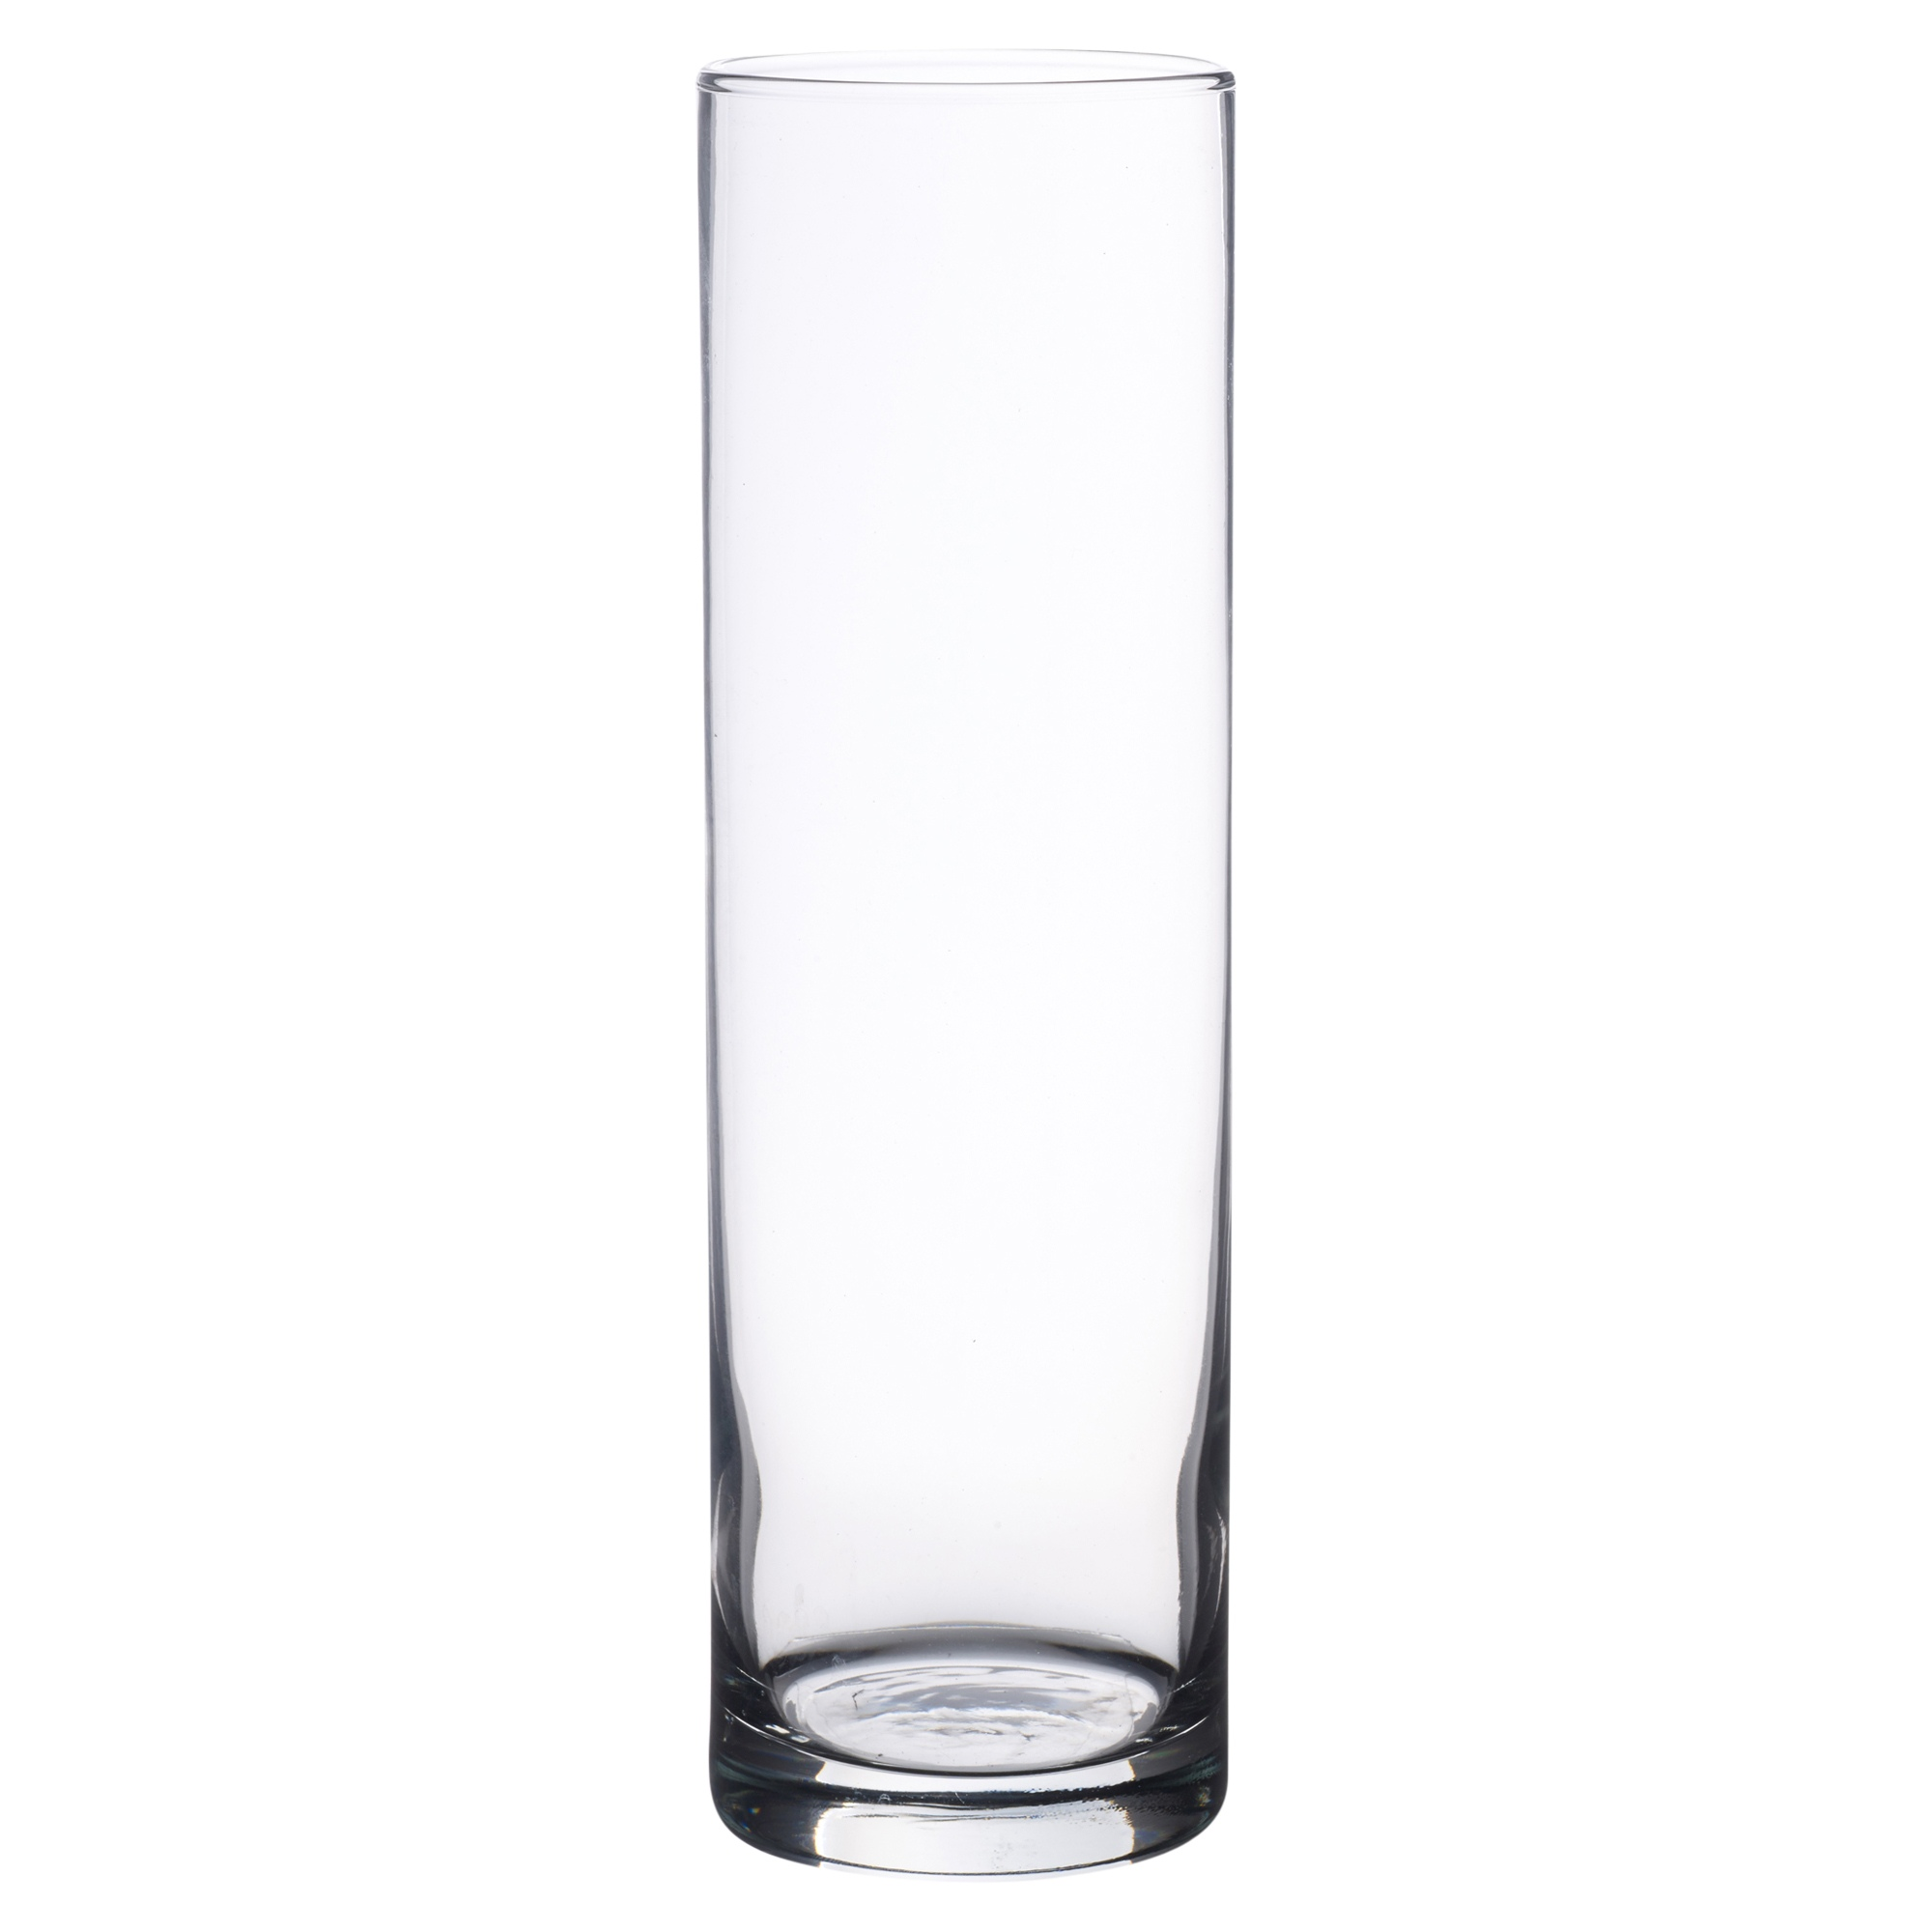 vases hire product cylinder category vase x lizl square decor glass flamboijant